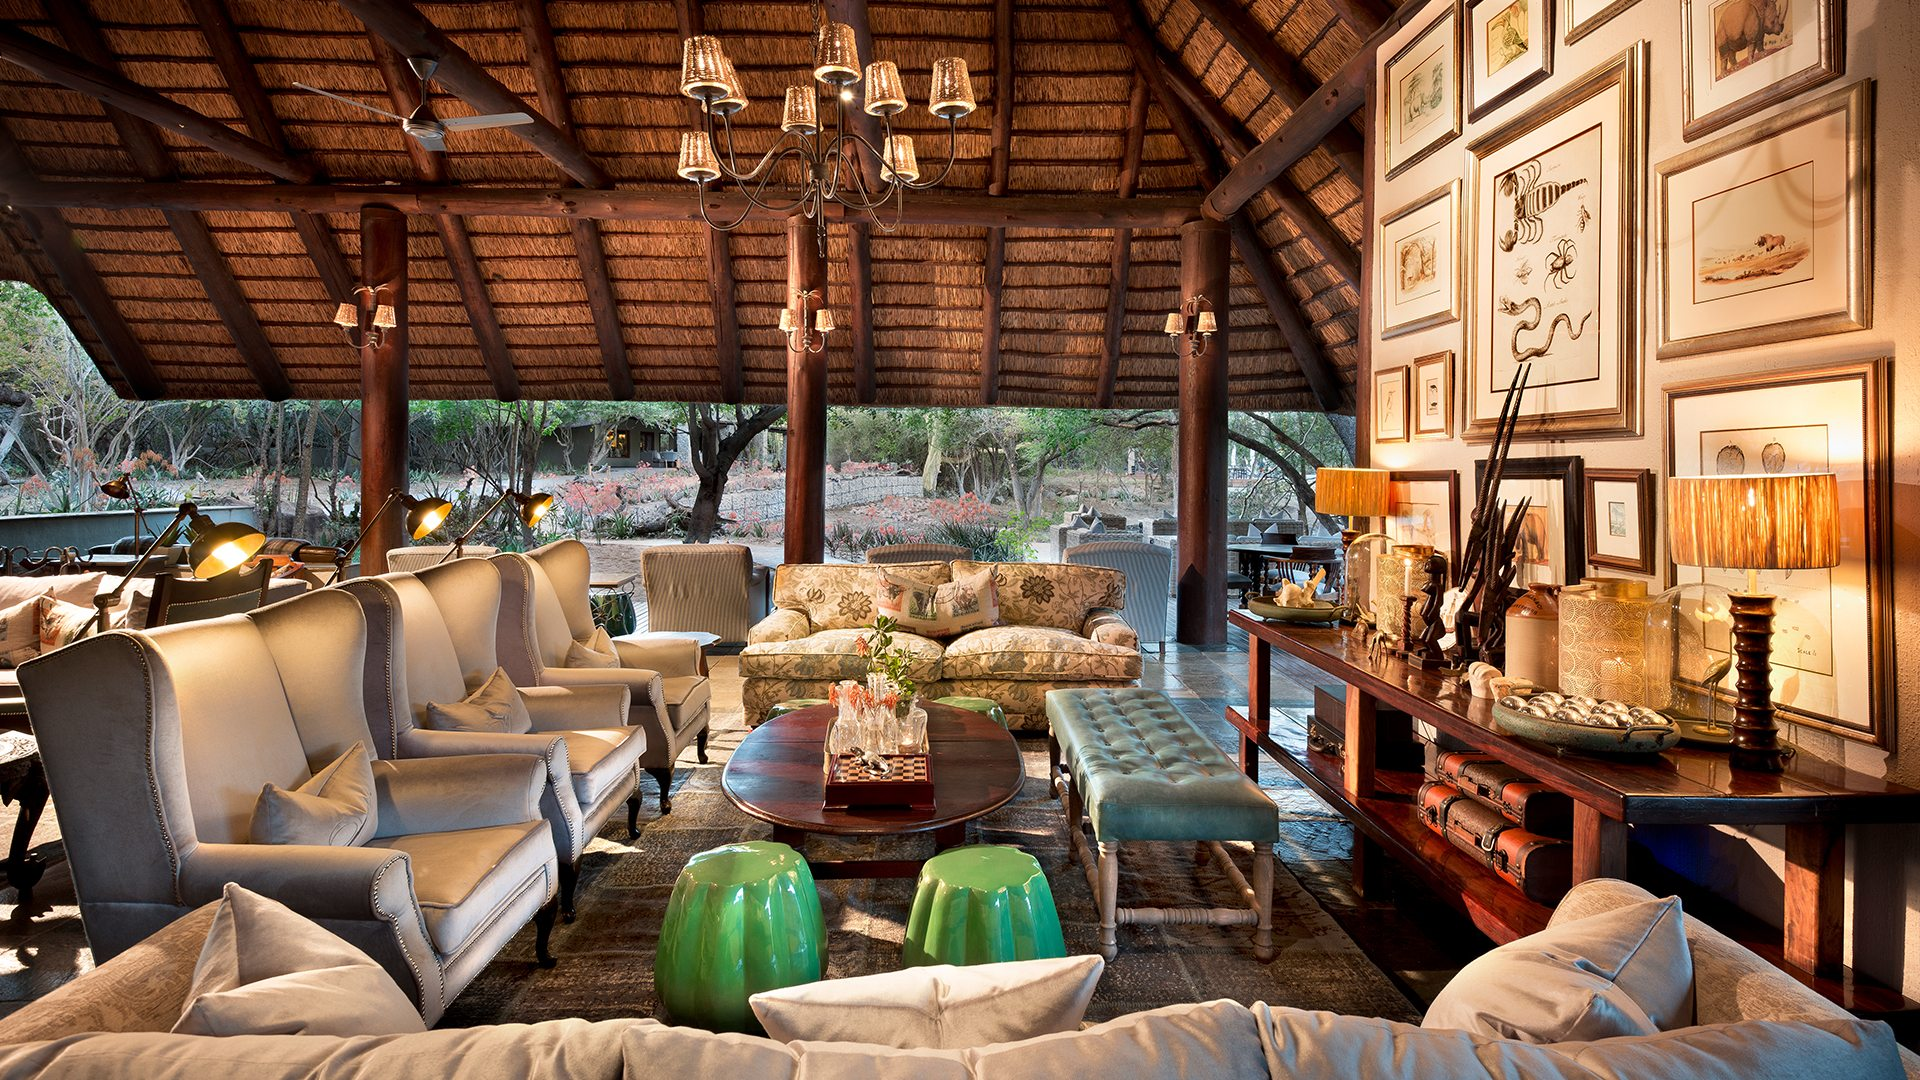 guest-area-at-luxury-andbeyond-ngala-safari-lodge-close-to-kruger-national-park-in-south-africa.jpg